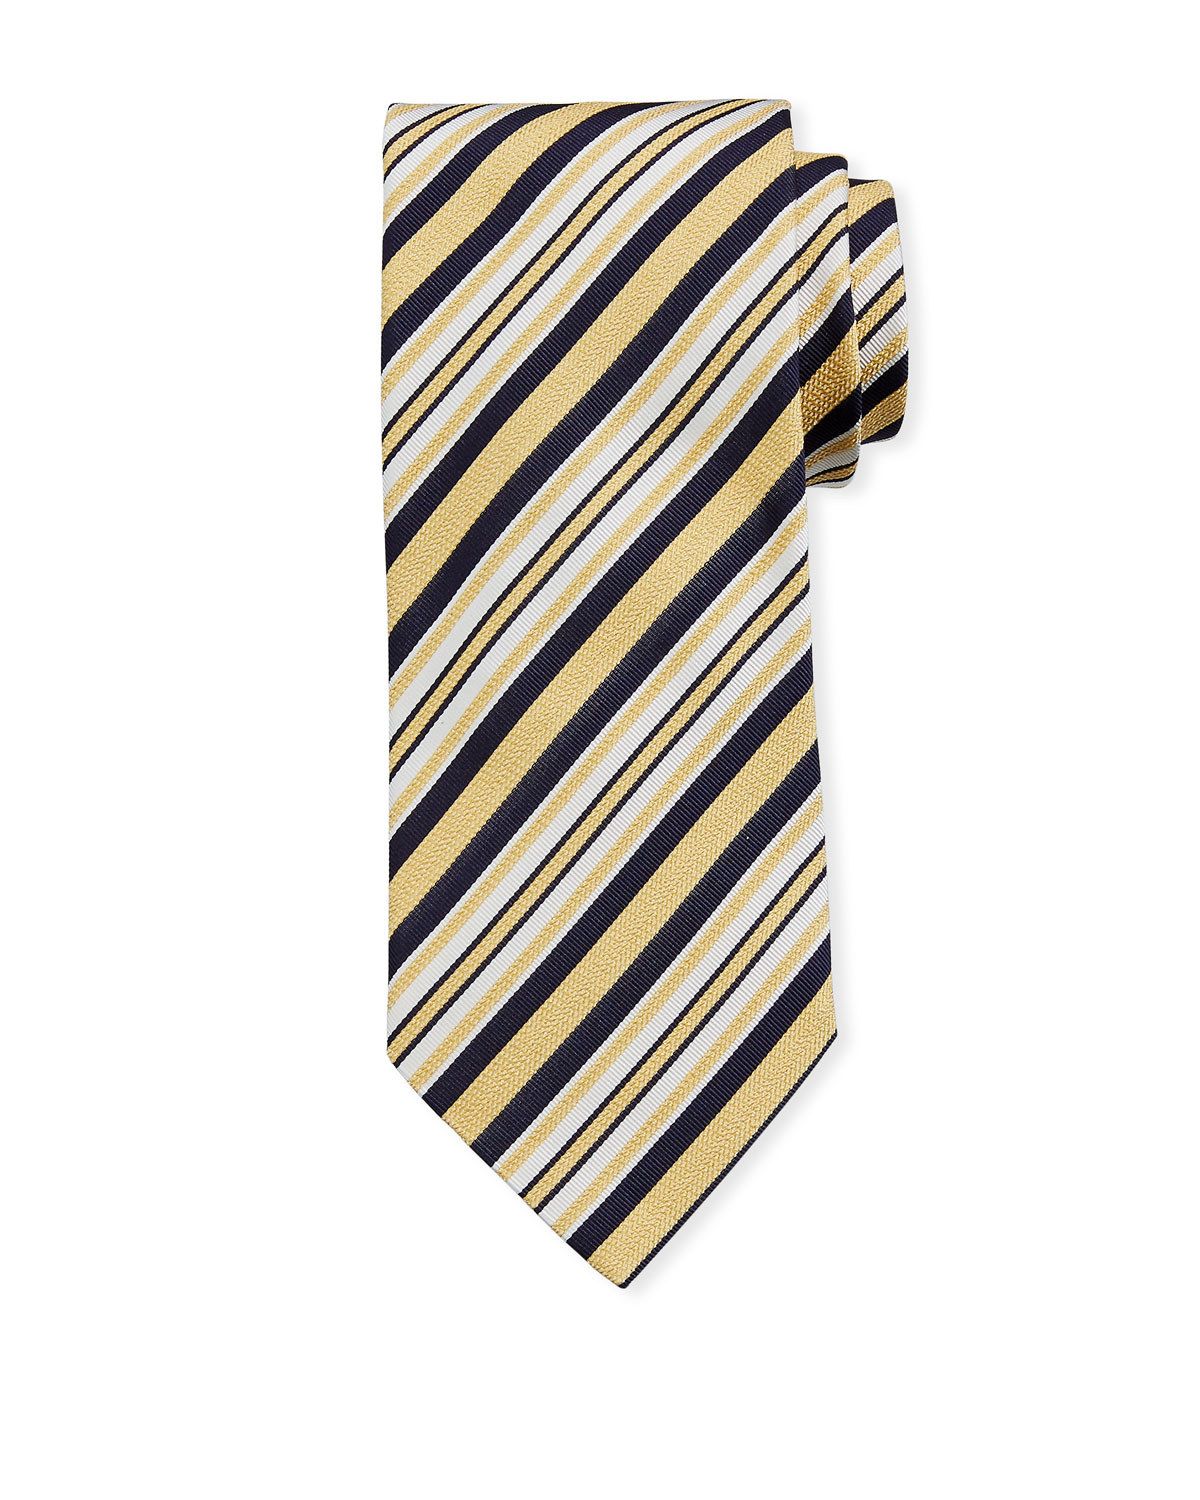 Ermenegildo Zegna Ties MULTI-STRIPE SILK TIE, YELLOW